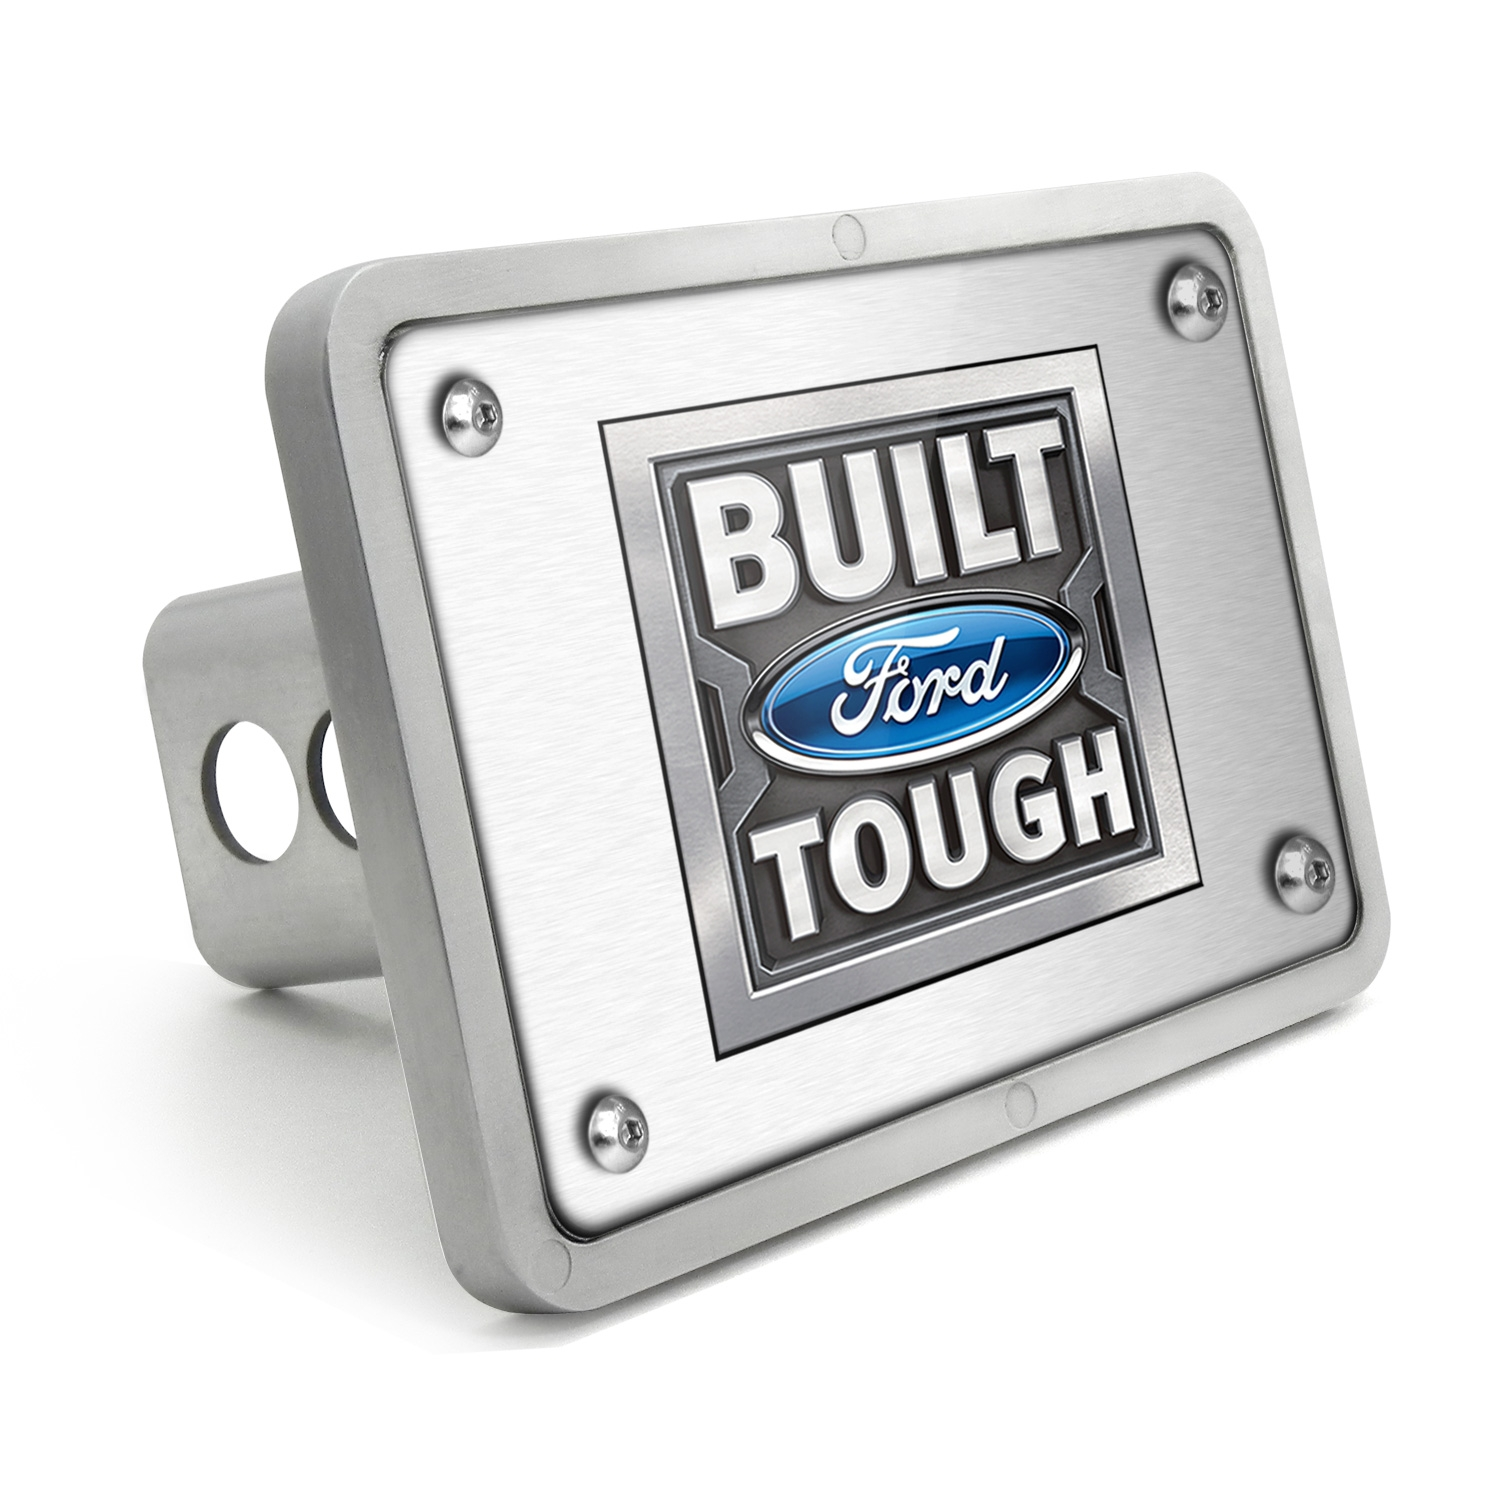 Ford Built Ford Tough UV Graphic Brushed Silver Billet Aluminum 2 inch Tow Hitch Cover